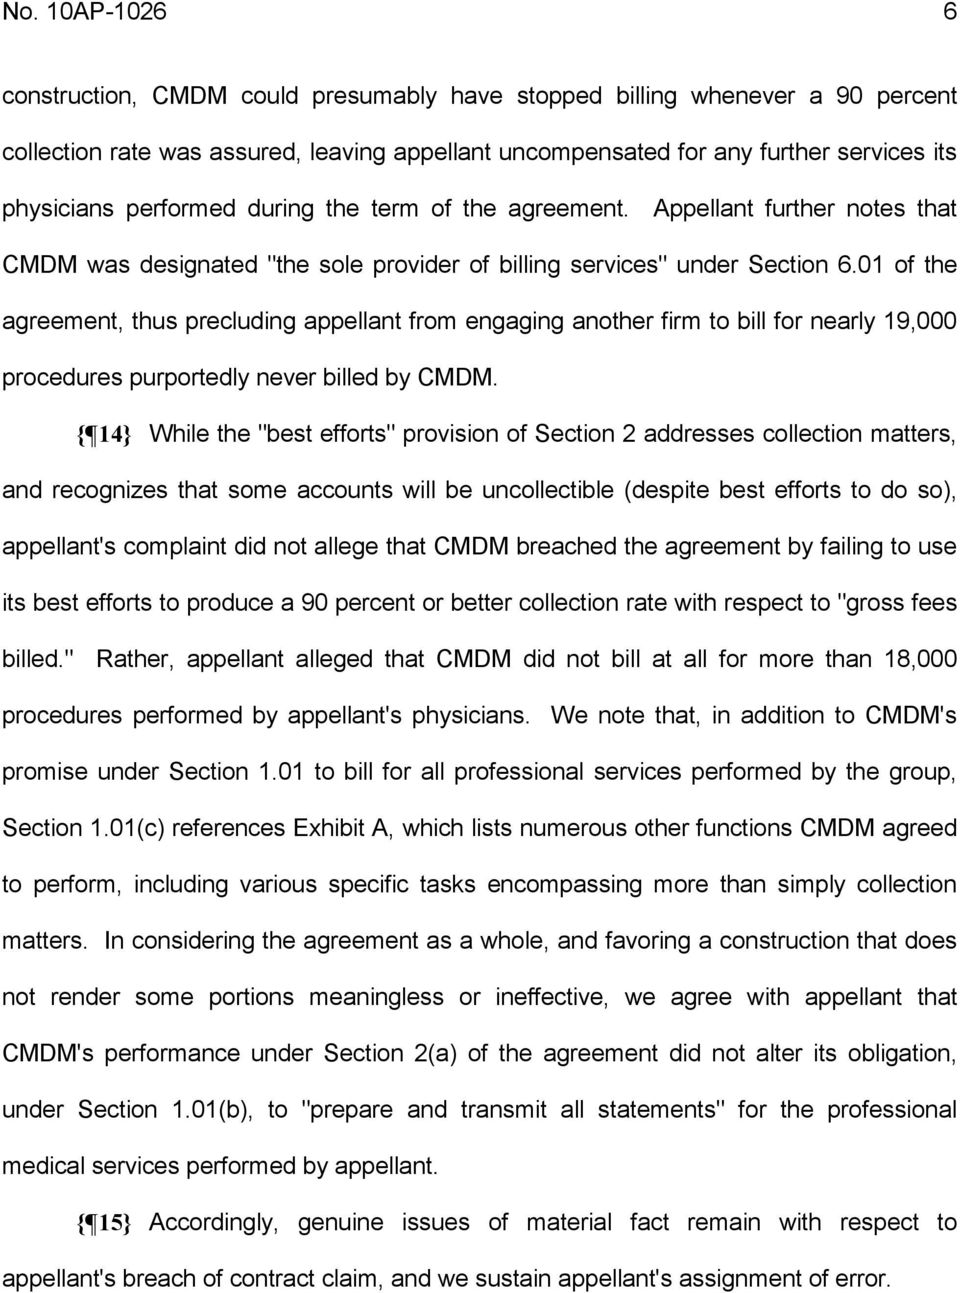 01 of the agreement, thus precluding appellant from engaging another firm to bill for nearly 19,000 procedures purportedly never billed by CMDM.